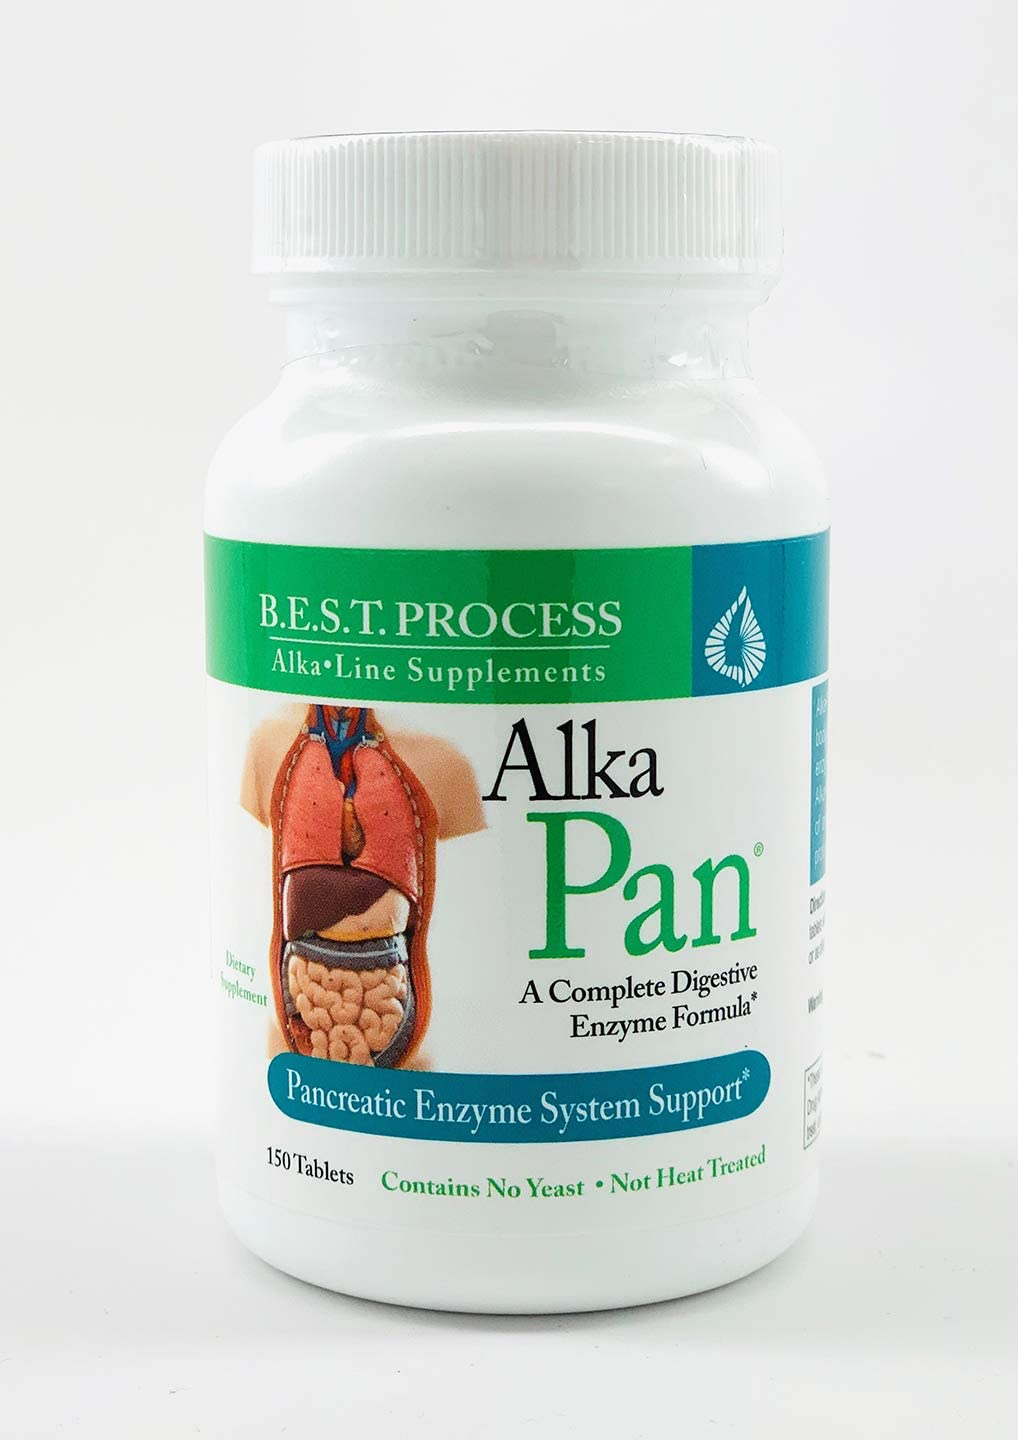 Alka-Pan by Morter HealthSystem B.E.S.T. Process Alkaline Pancreatic Enzymes for Stress Relief Digestive Health with Pancreatin, Papaya, Bromelain, Betaine HCL, Chamomile, Peppermint Anise Seed